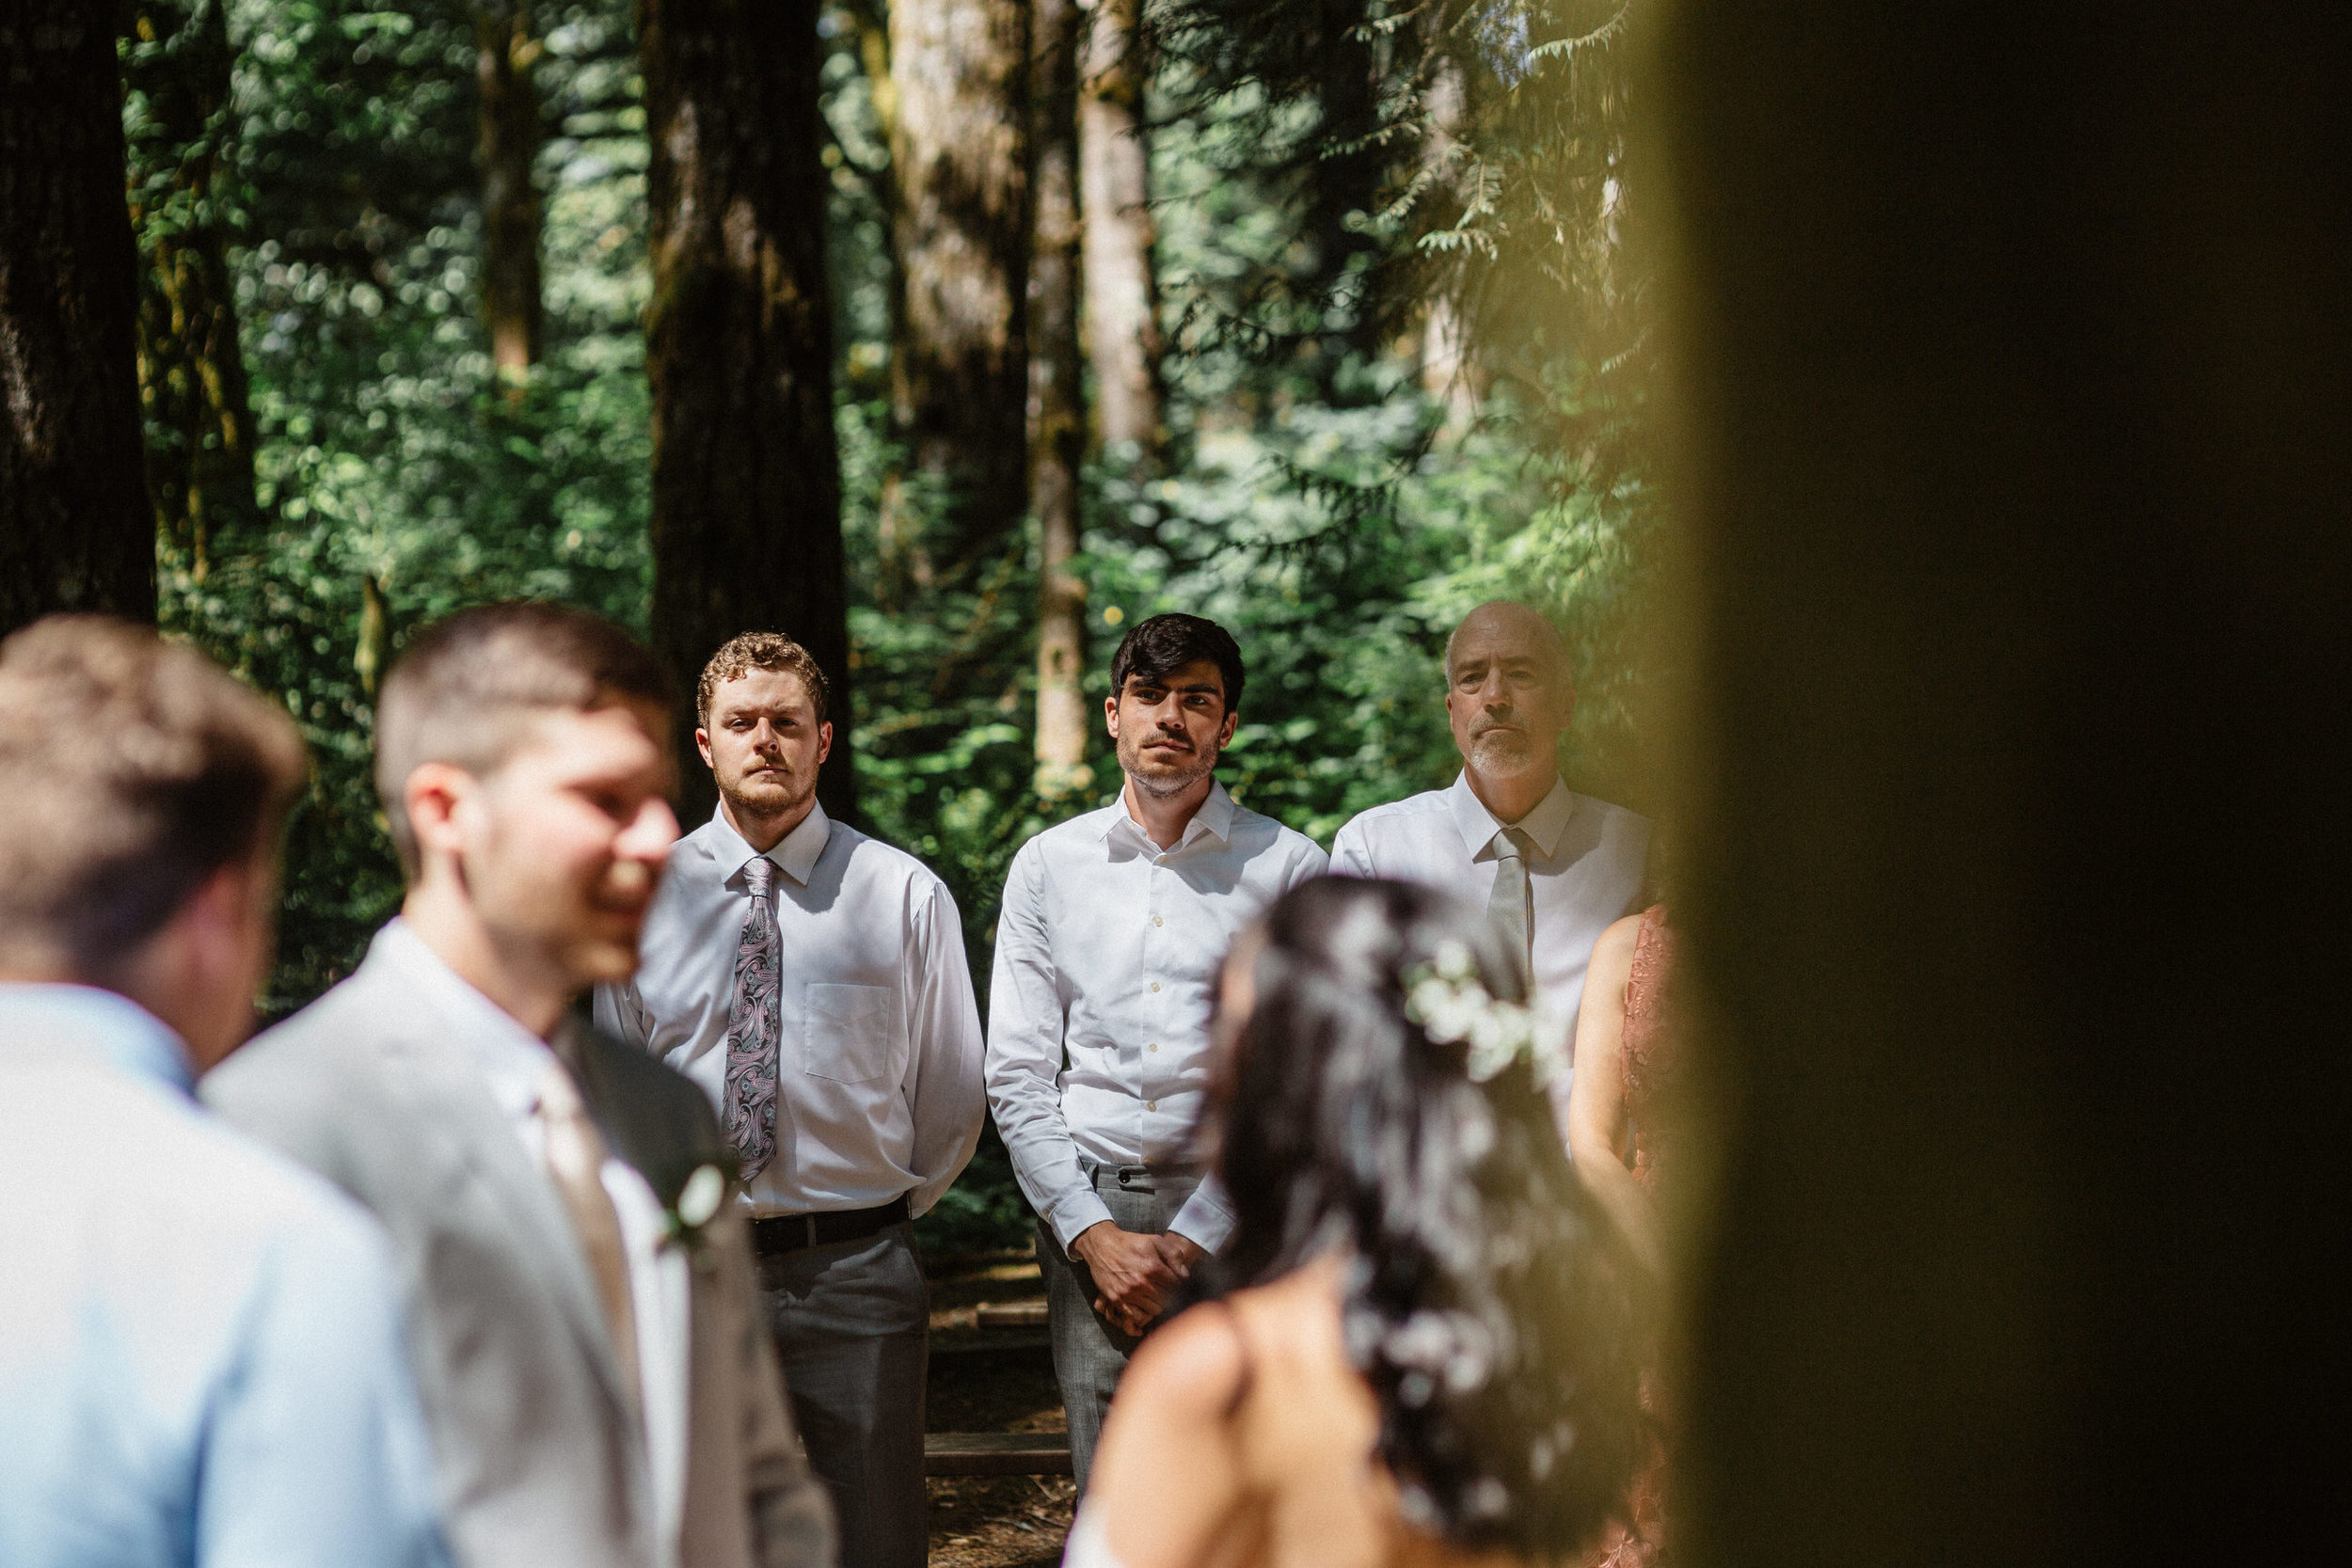 MT Hood Wildwood elopement wedding oregon portland photography0027.JPG